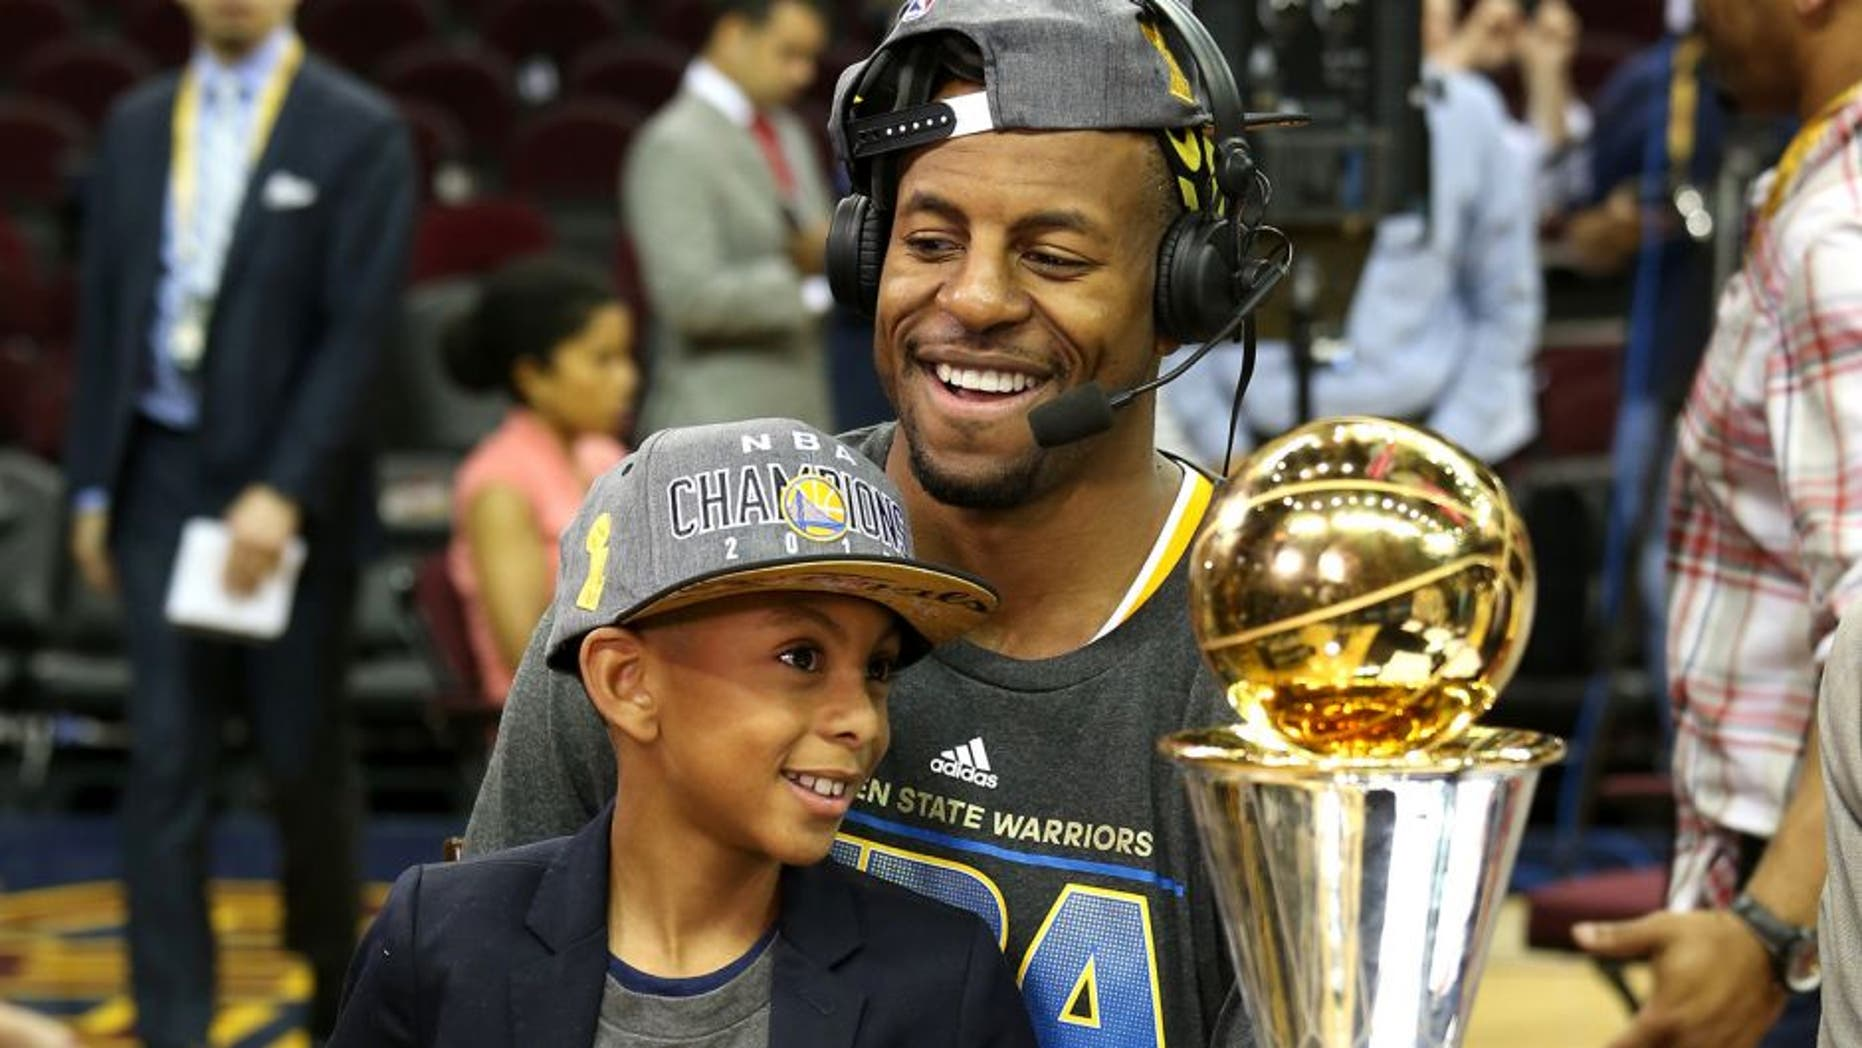 CLEVELAND, OH - JUNE 16: Andre Iguodala #9 of the Golden State Warriors appears on NBA TV after winning Game Six of the 2015 NBA Finals against the Cleveland Cavaliers on June 16, 2015 at Quicken Loans Arena in Cleveland. Ohio. NOTE TO USER: User expressly acknowledges and agrees that, by downloading and or using this Photograph, user is consenting to the terms and conditions of the Getty Images License Agreement. Mandatory Copyright Notice: Copyright 2015 NBAE (Photo by Gary Dineen/NBAE via Getty Images)